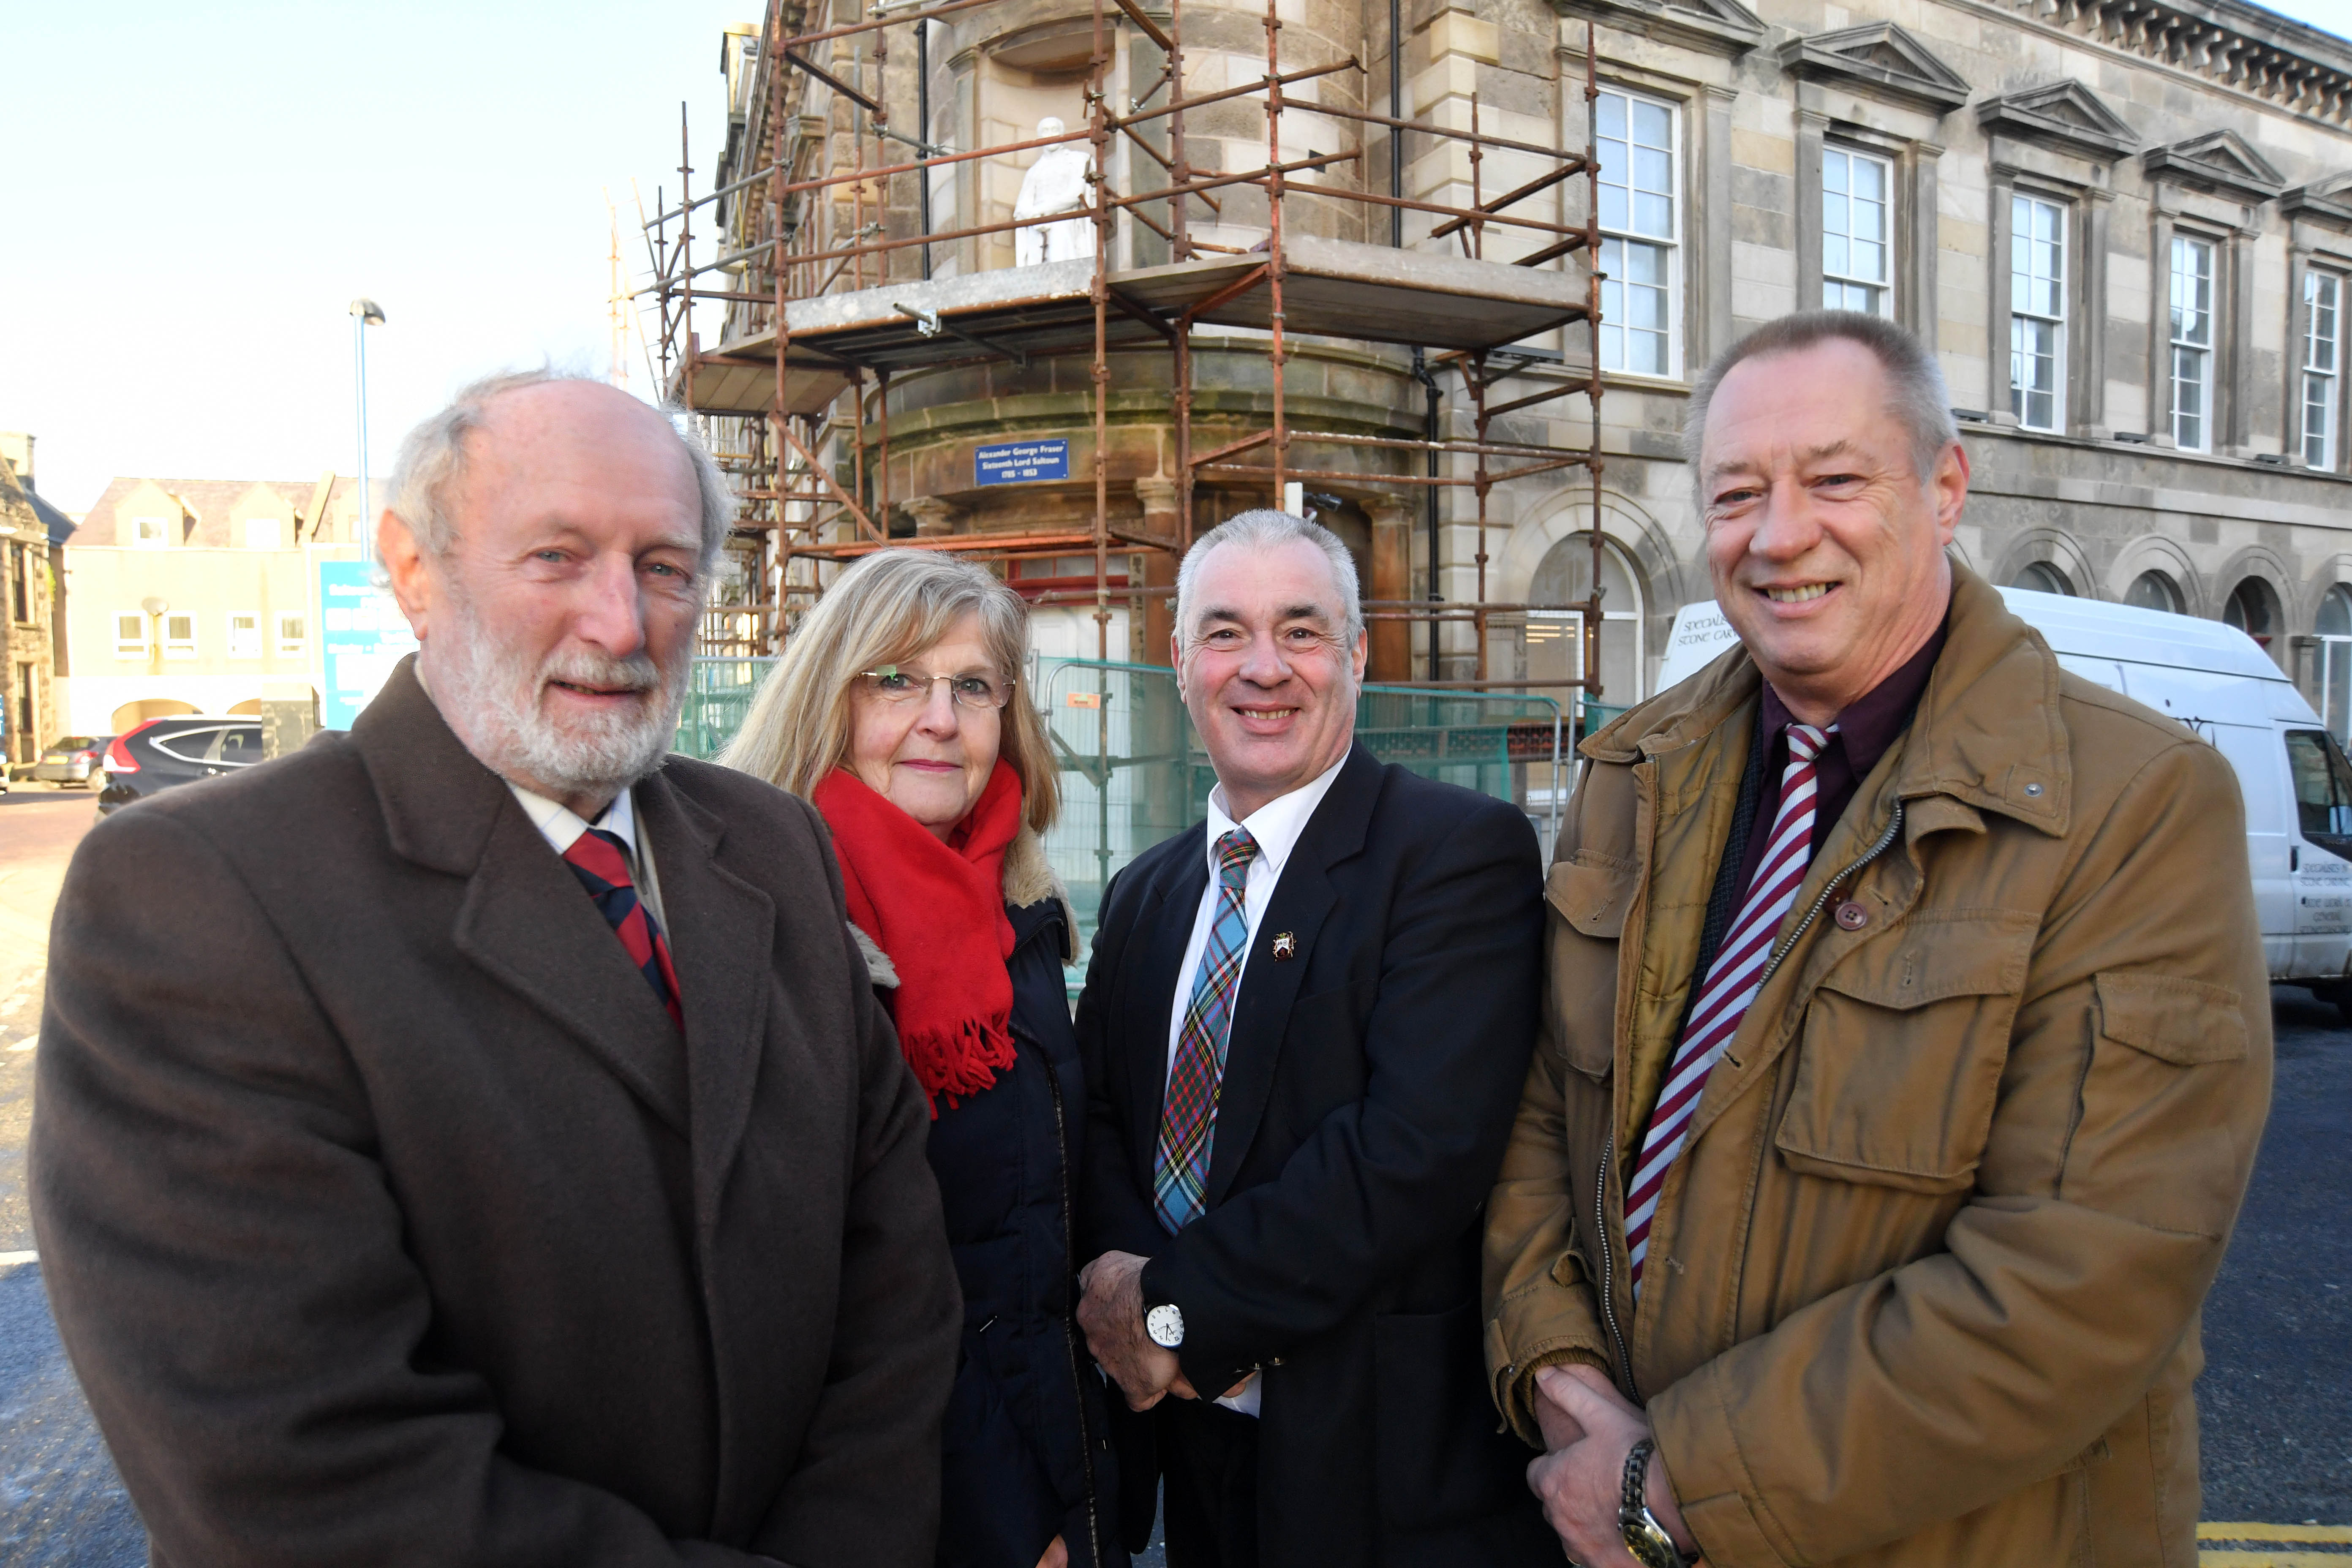 Fraserburgh councillors Charles Buchan, Doreen Mair, Brian Topping and Andy Kille at the Faithlie Centre where refurbishment work is ongoing.